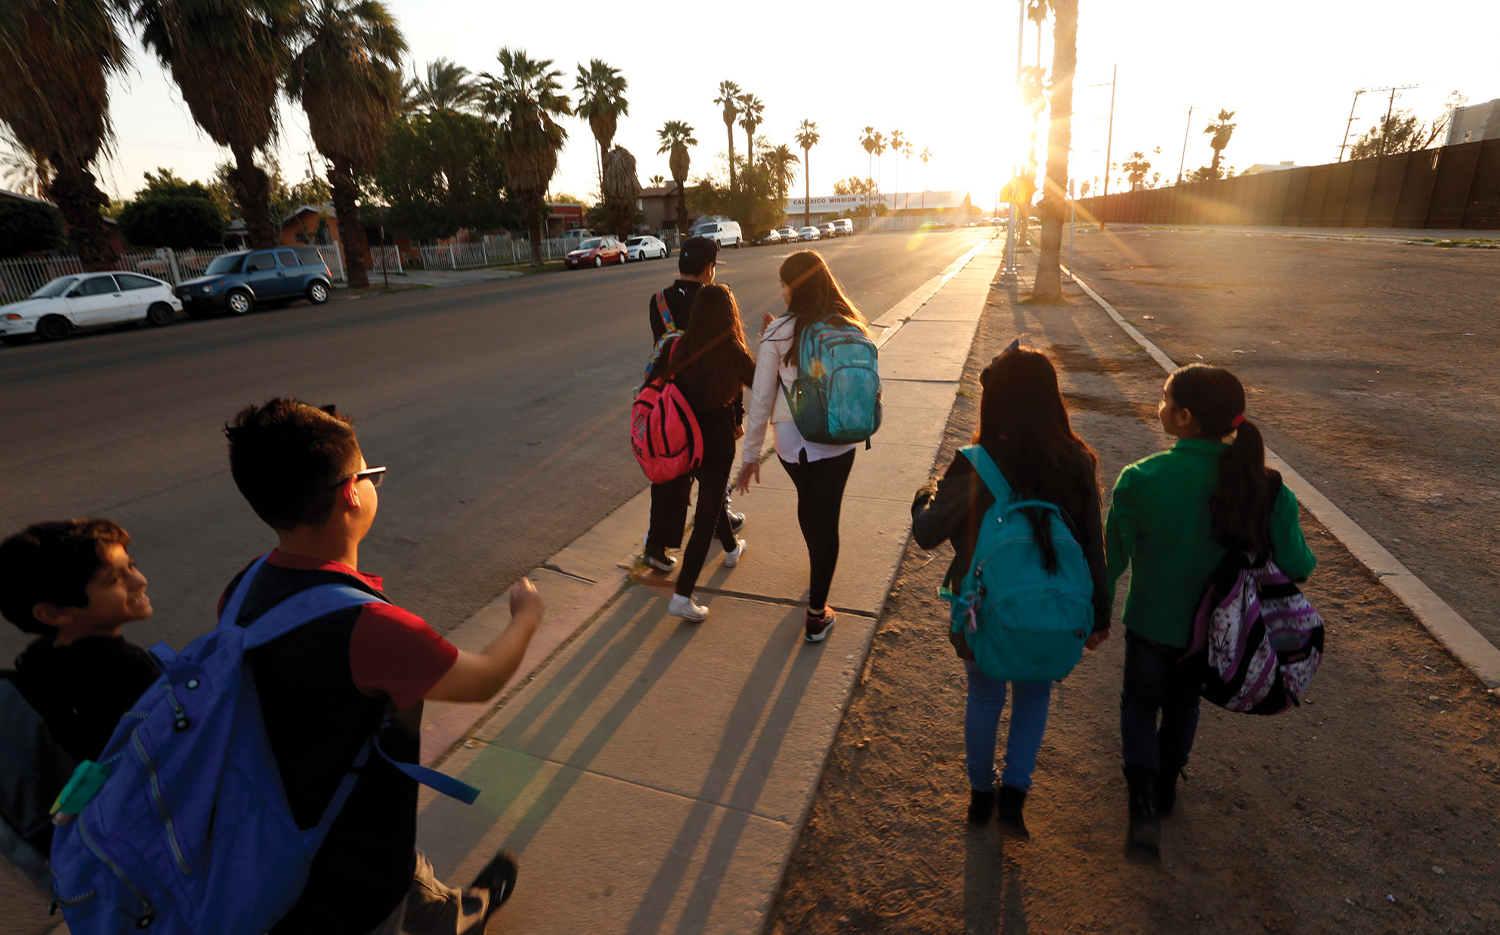 After crossing the border from Mexicali, Mexico, students make their way to school in Calexico, Calif.